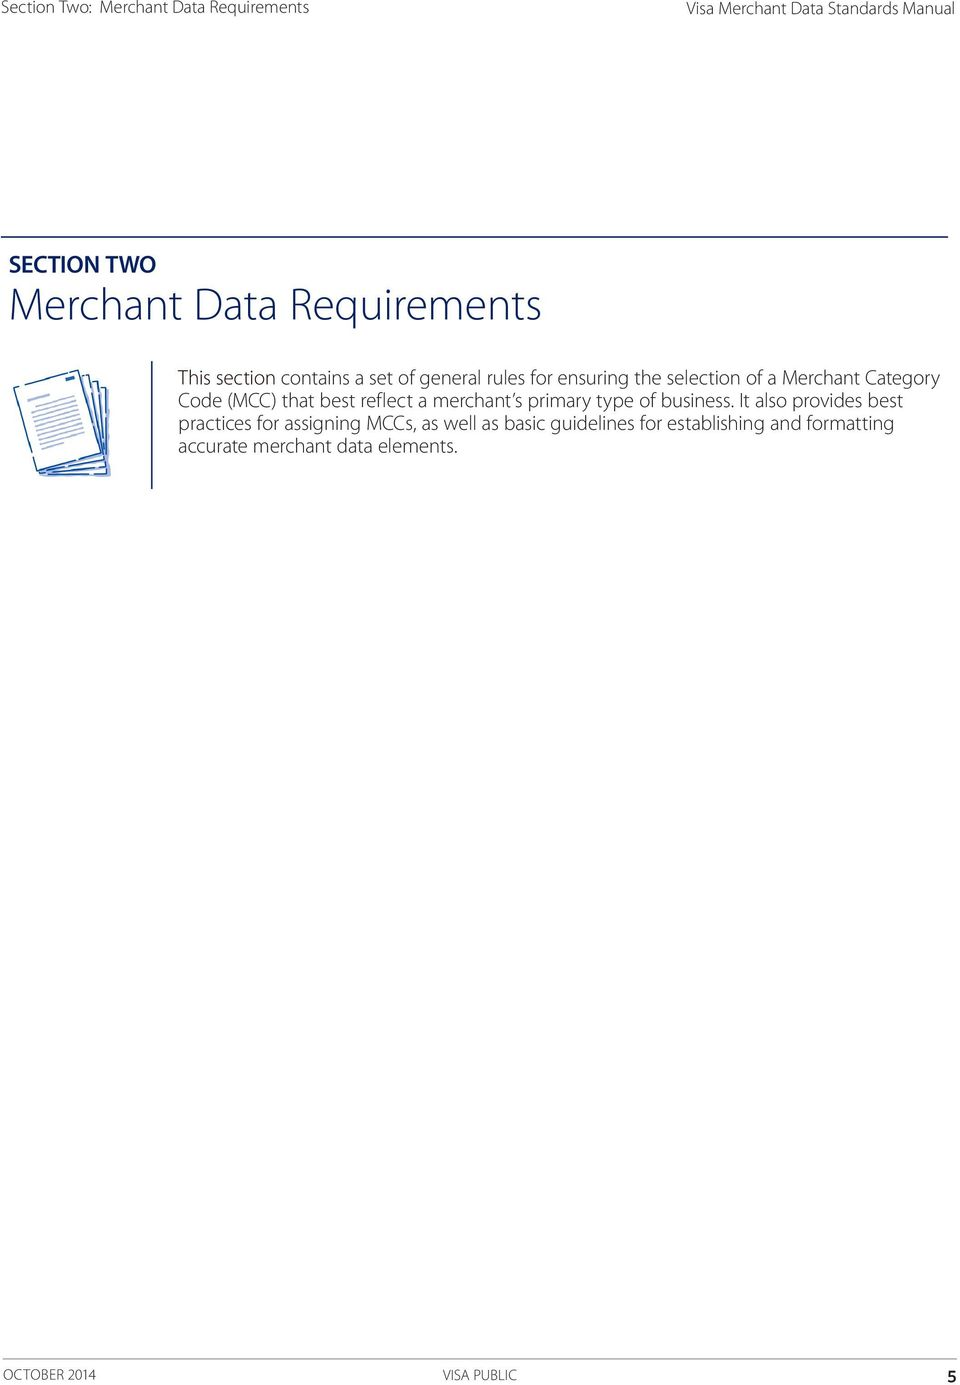 Visa merchant data standards manual pdf mcc that best reflect a merchant s primary type of business fandeluxe Gallery